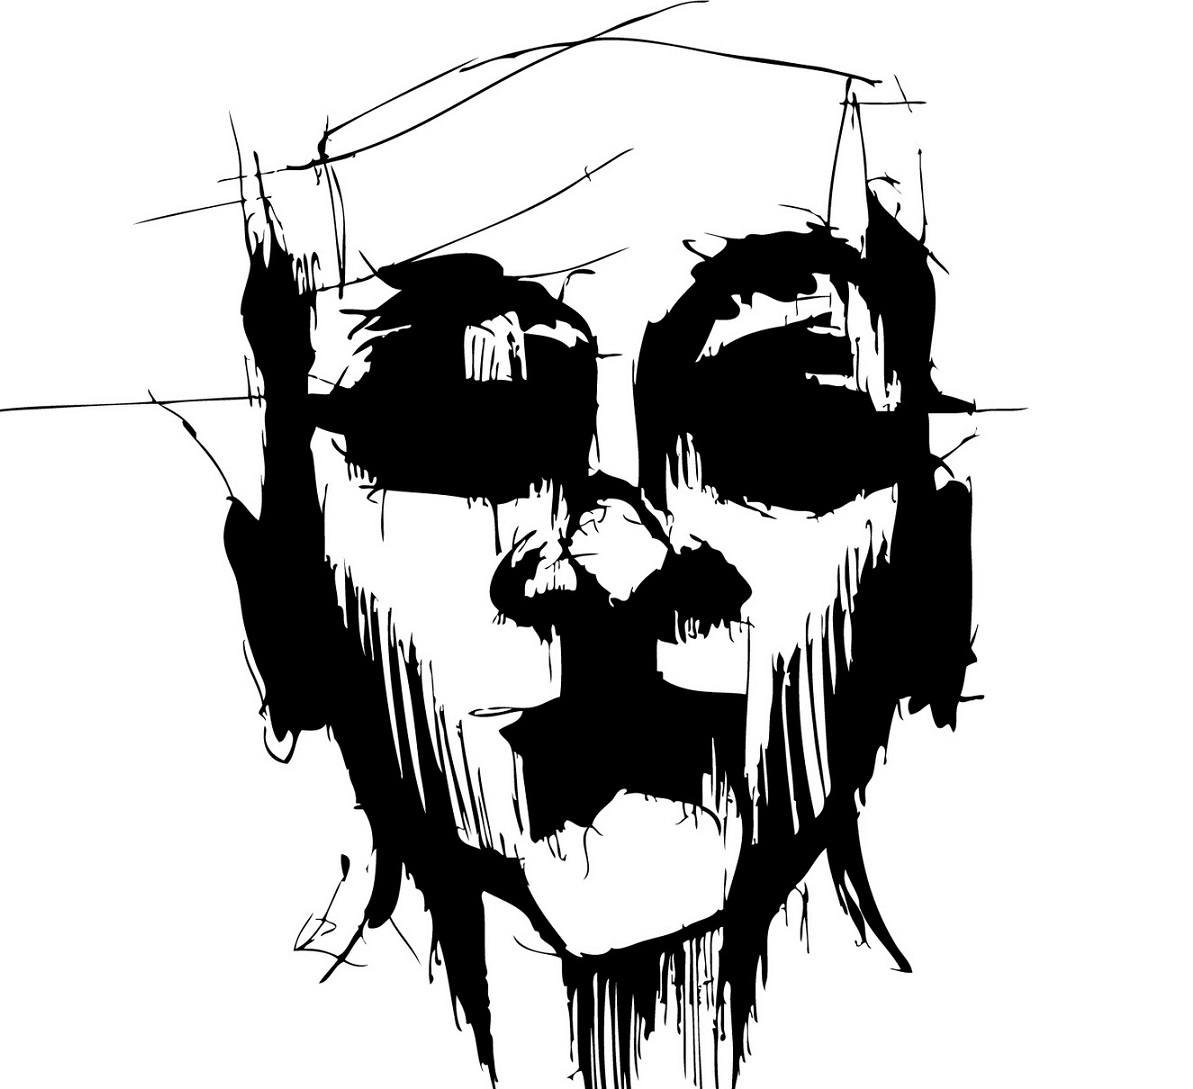 black and white line drawing of horror face - deep shadows for eye sockets